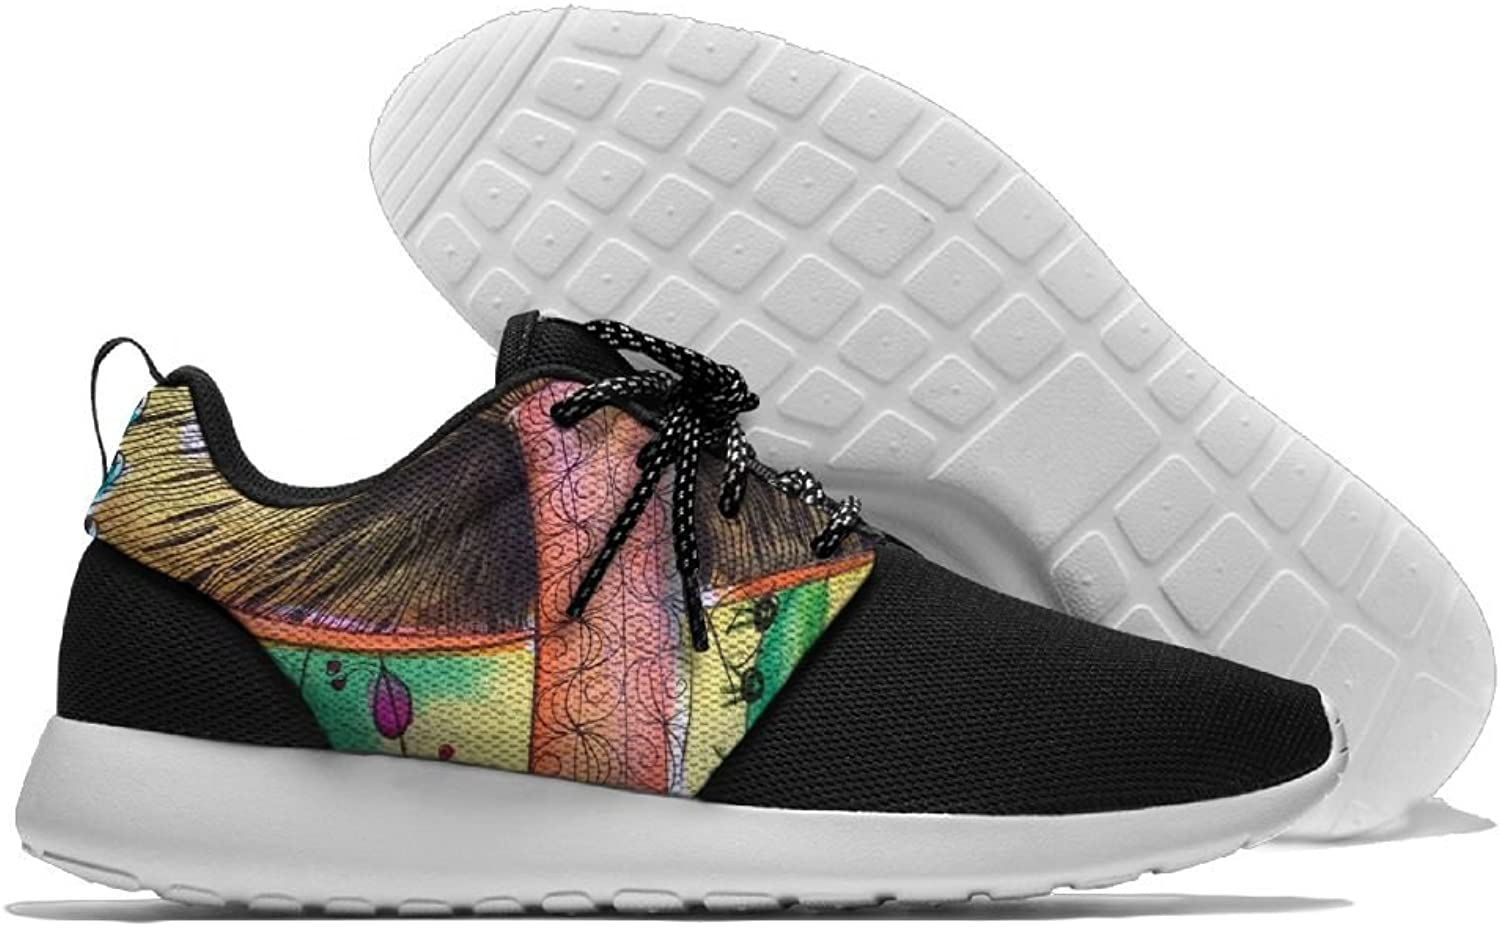 Sneakers Casual Running shoes Mushroom Paintings Lightweight Breathable Mesh Walking Men Women shoes For Sports Athletic Gym Travel